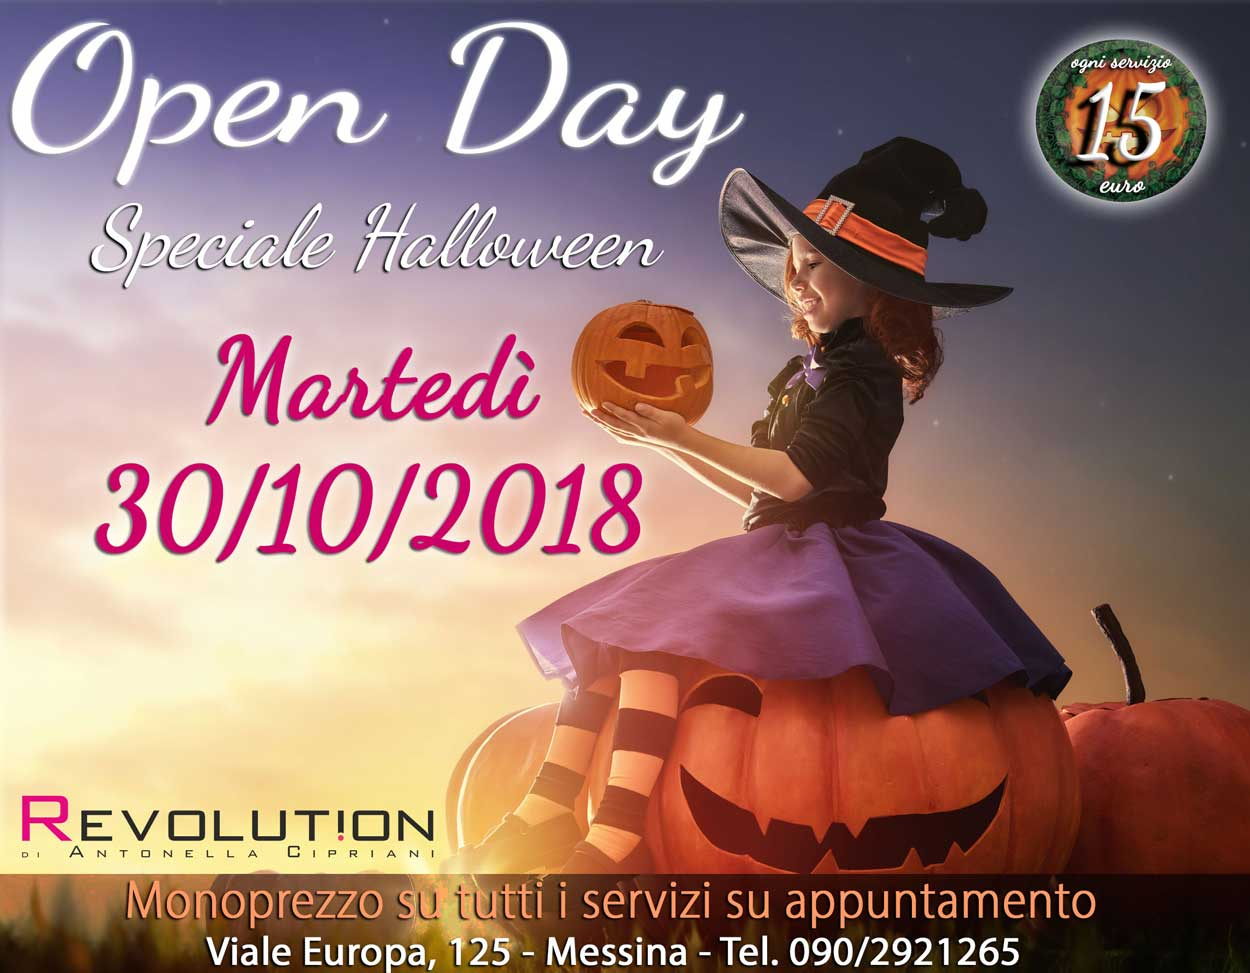 open-day-30-10-2018